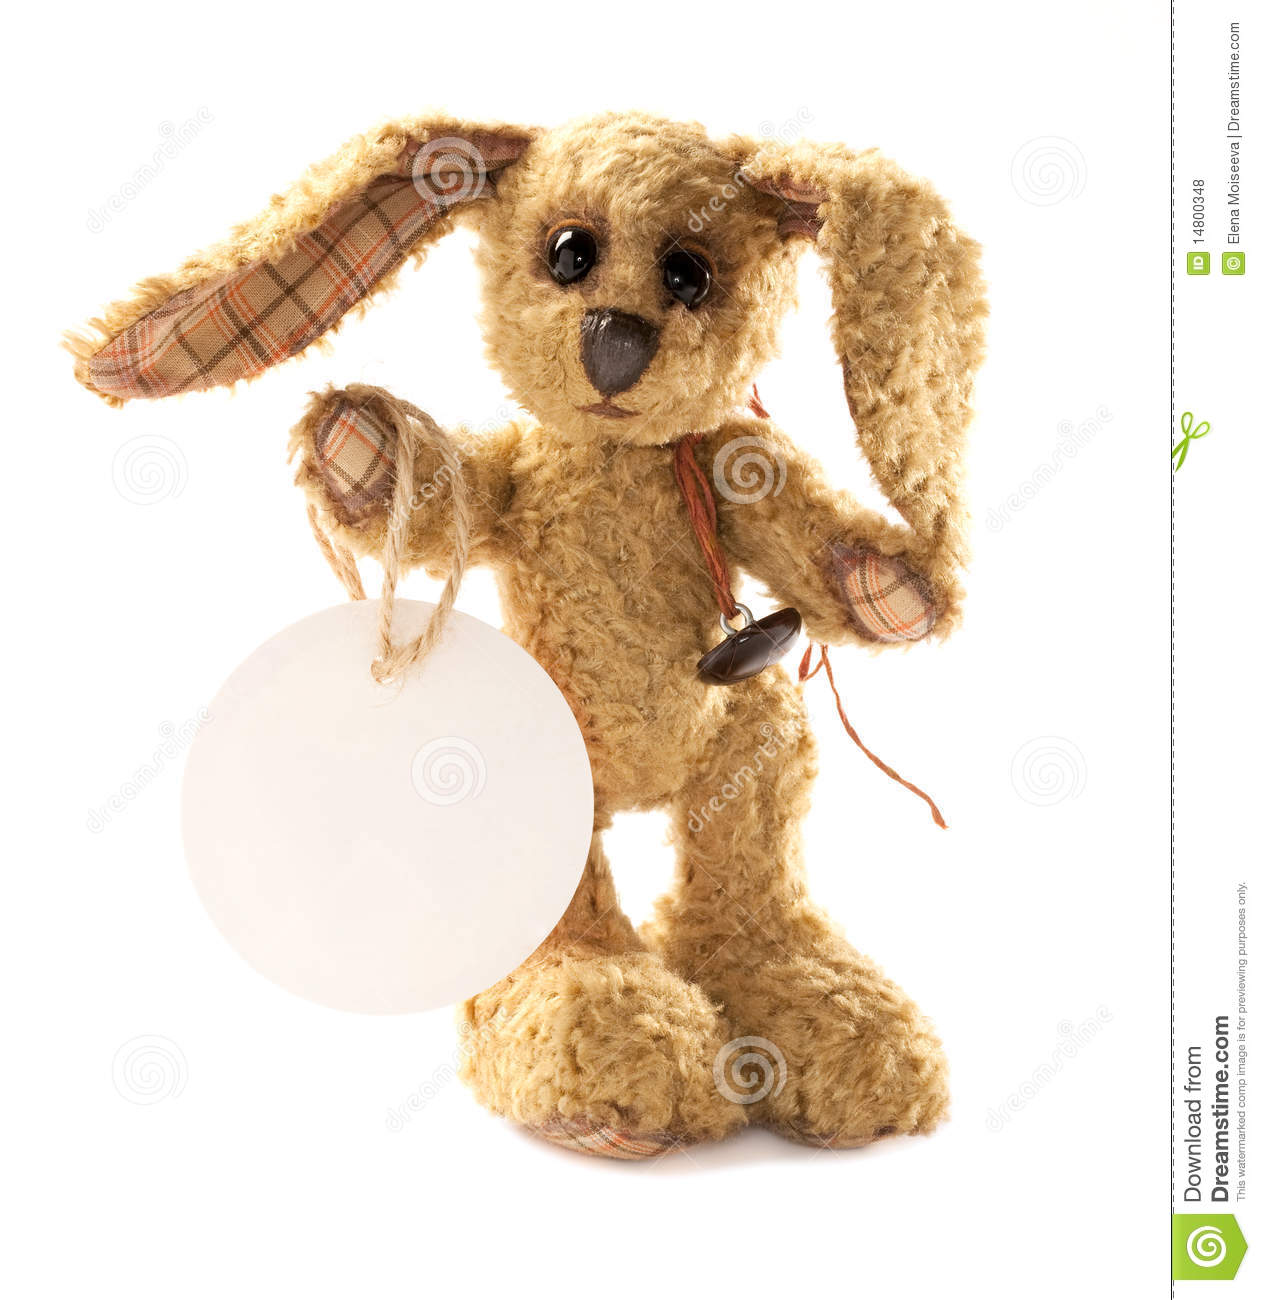 Small Toy Rabbits : Small rabbit bunny soft toy standing royalty free stock